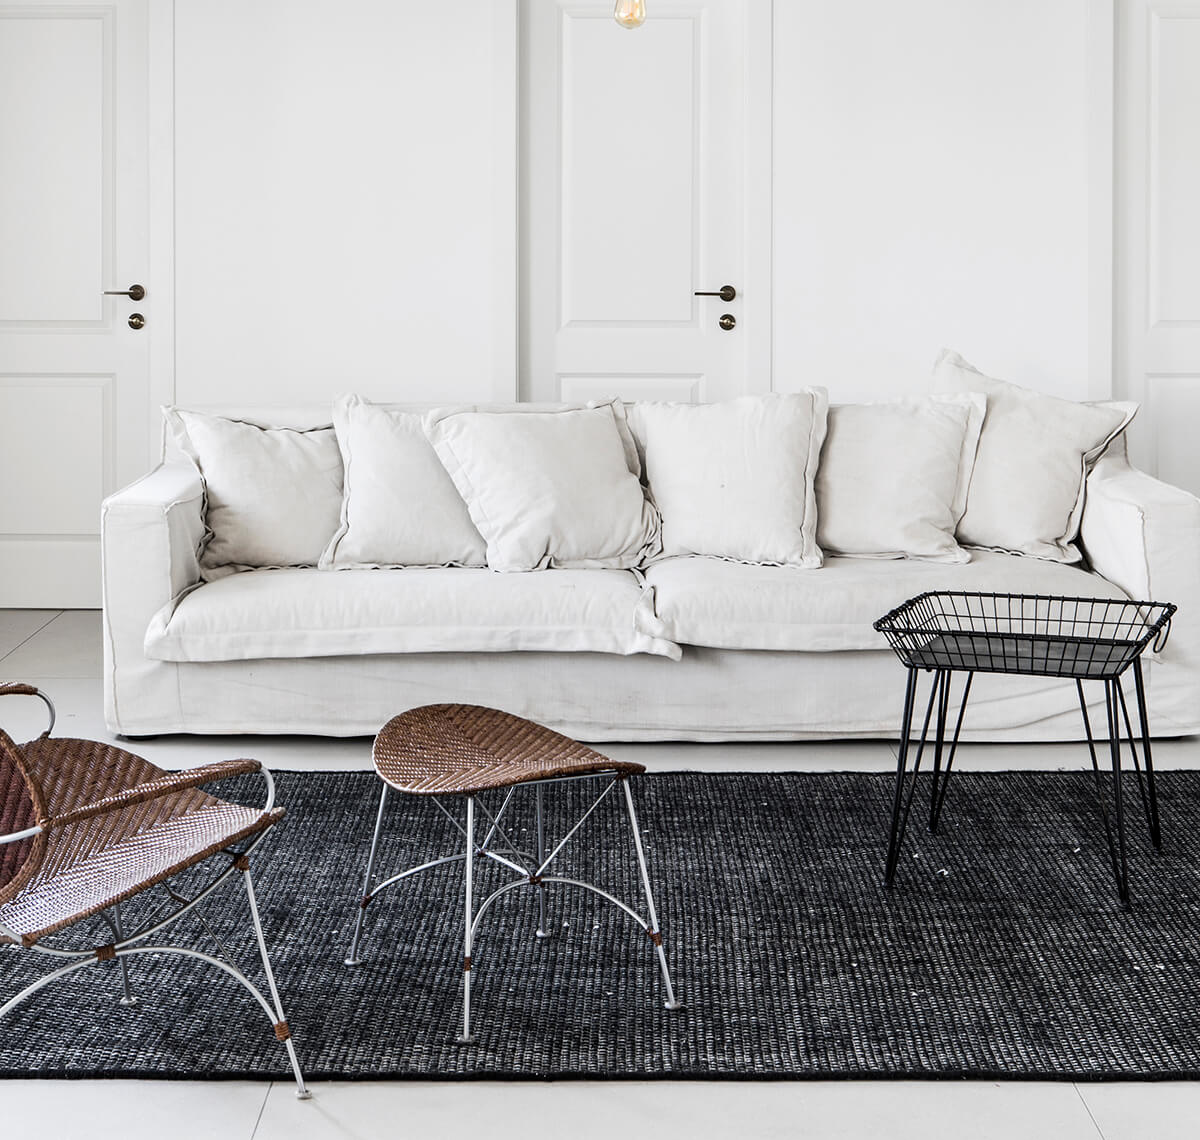 White sofa in nordic apartment designed by Roni Bartal